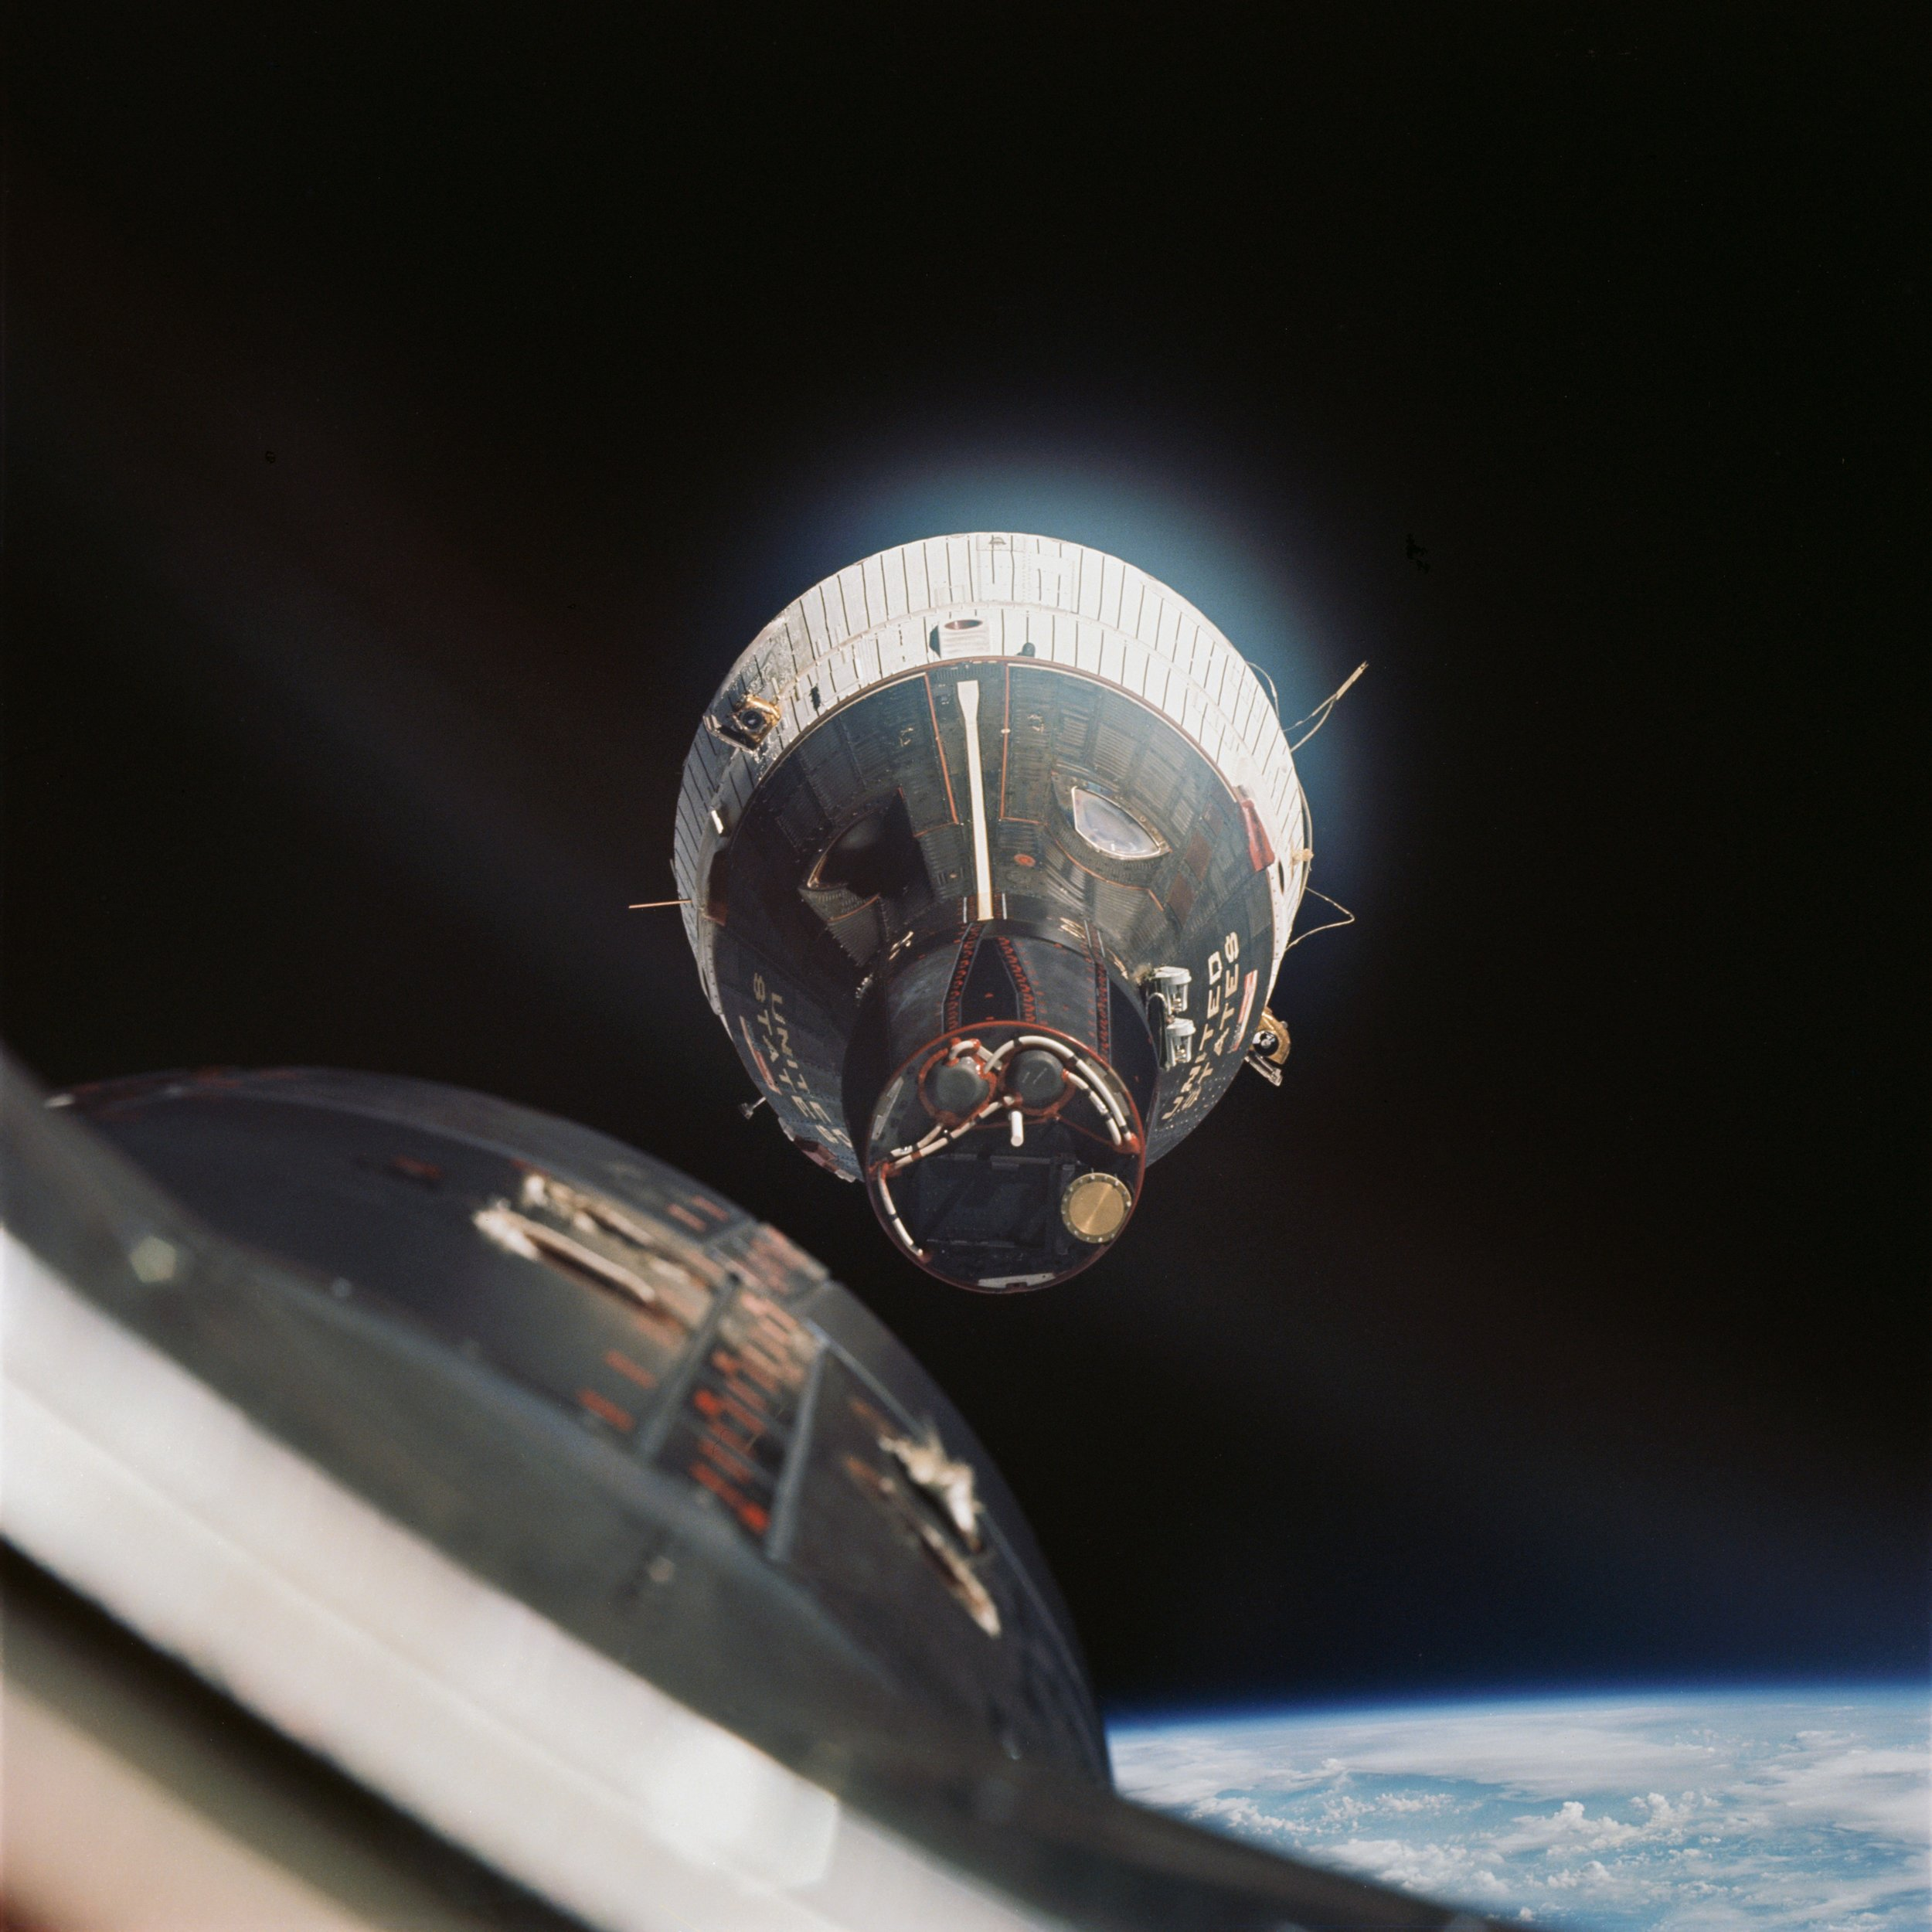 Gemini VII spacecraft